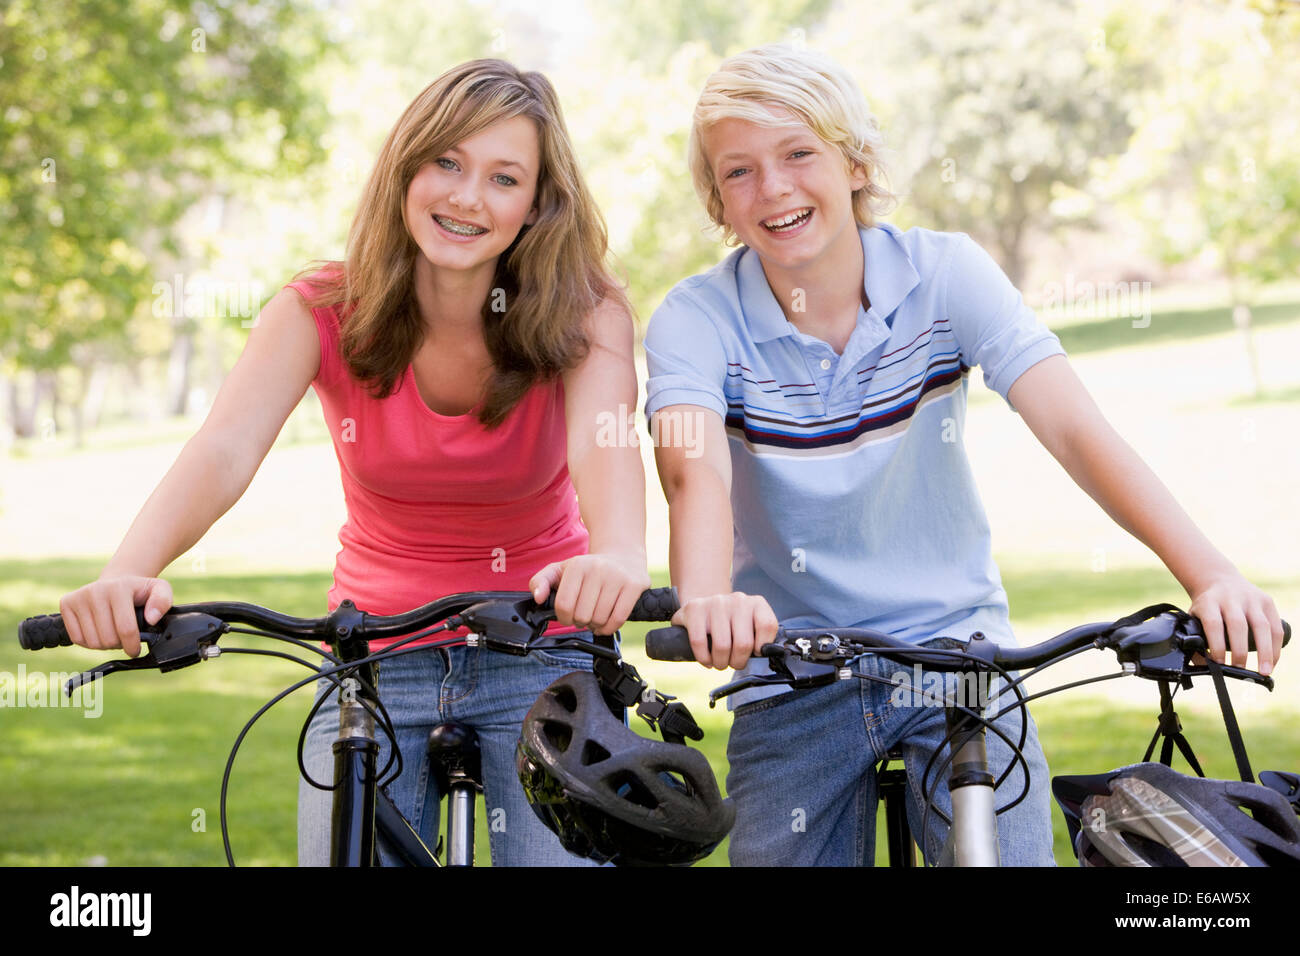 teenager,leisure,cycling,friends - Stock Image